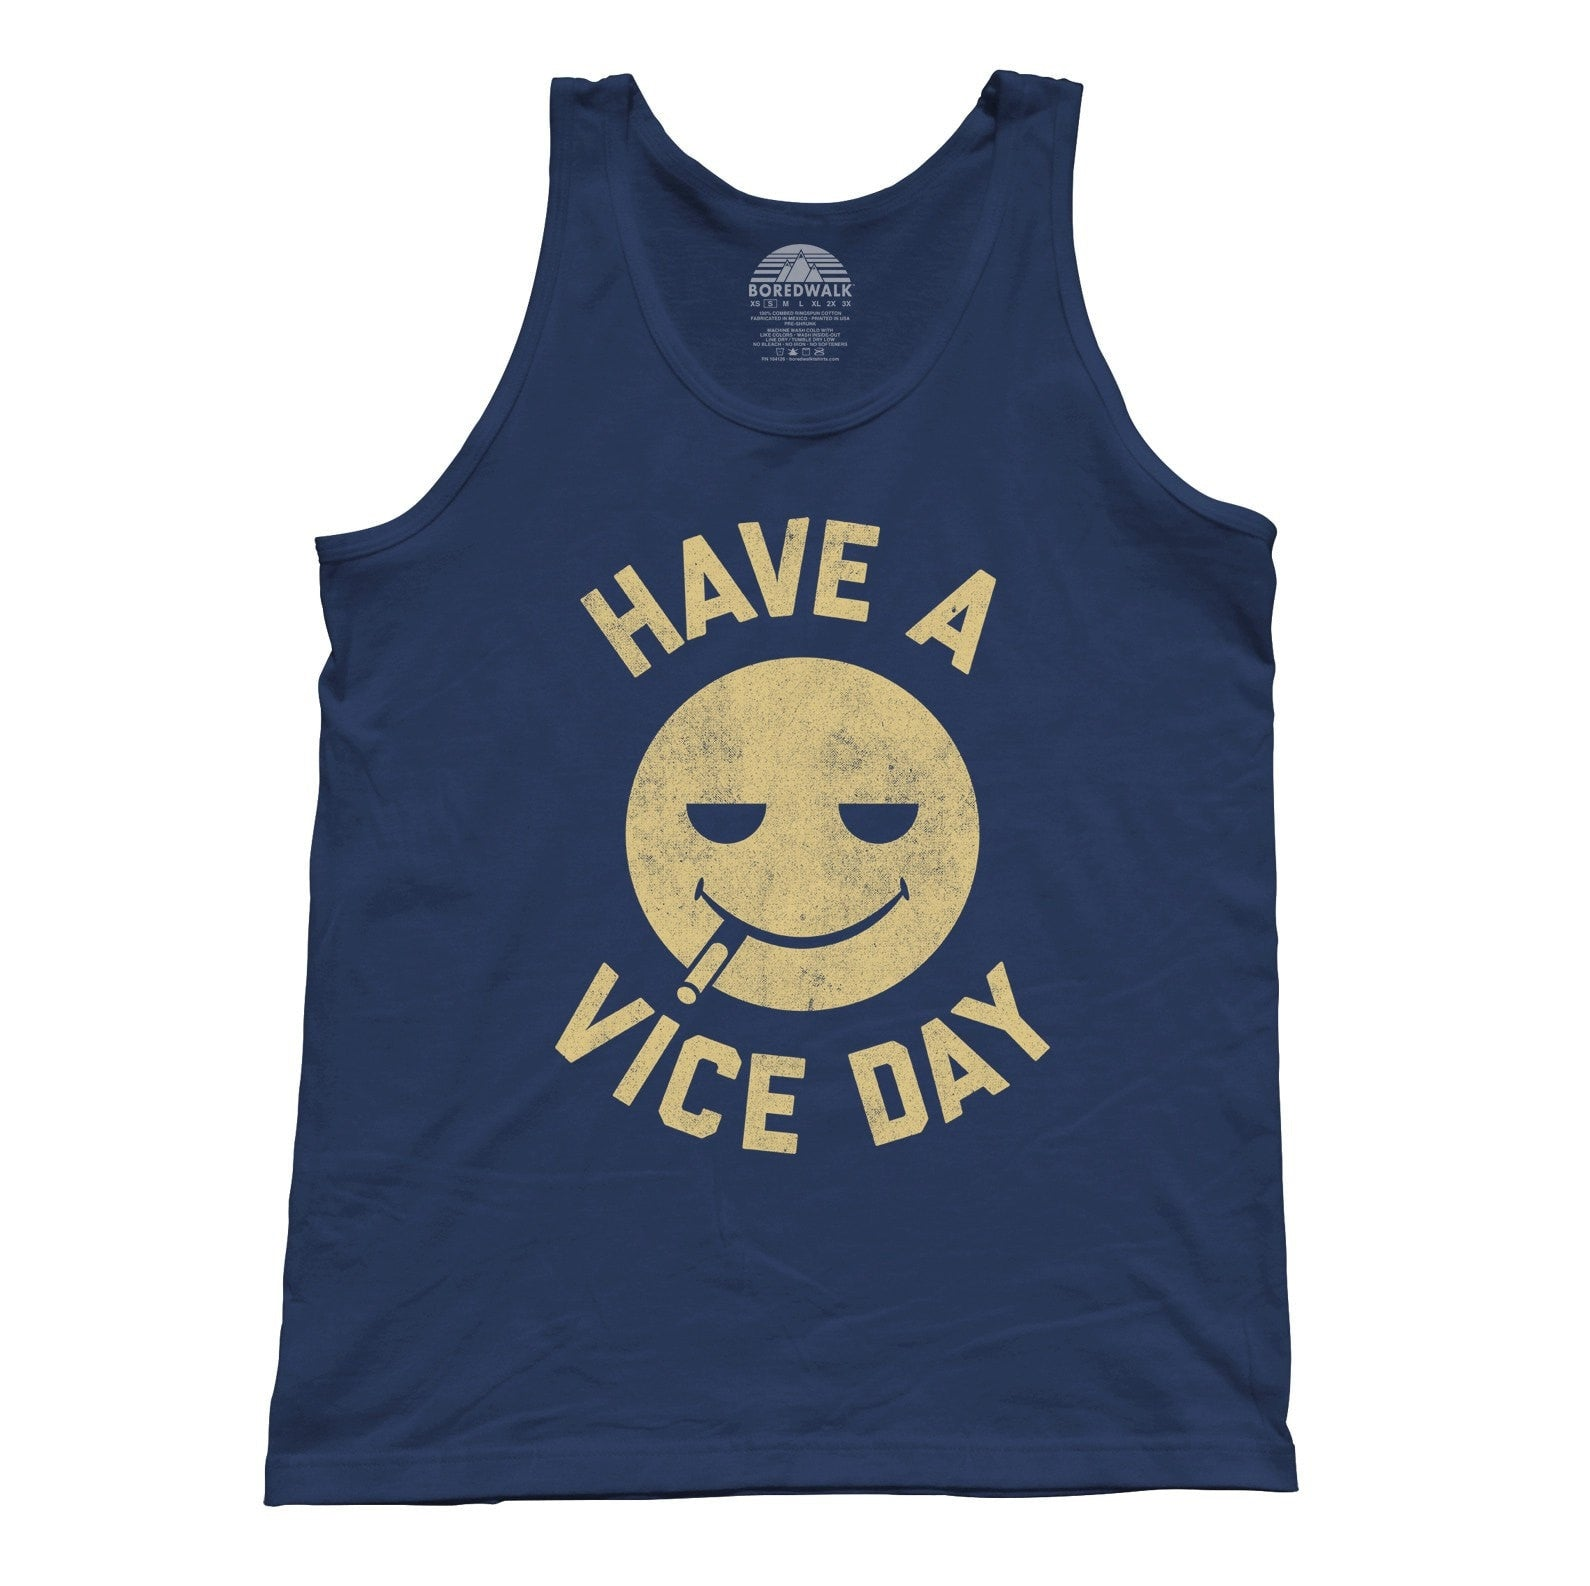 Unisex Have a Vice Day Tank Top